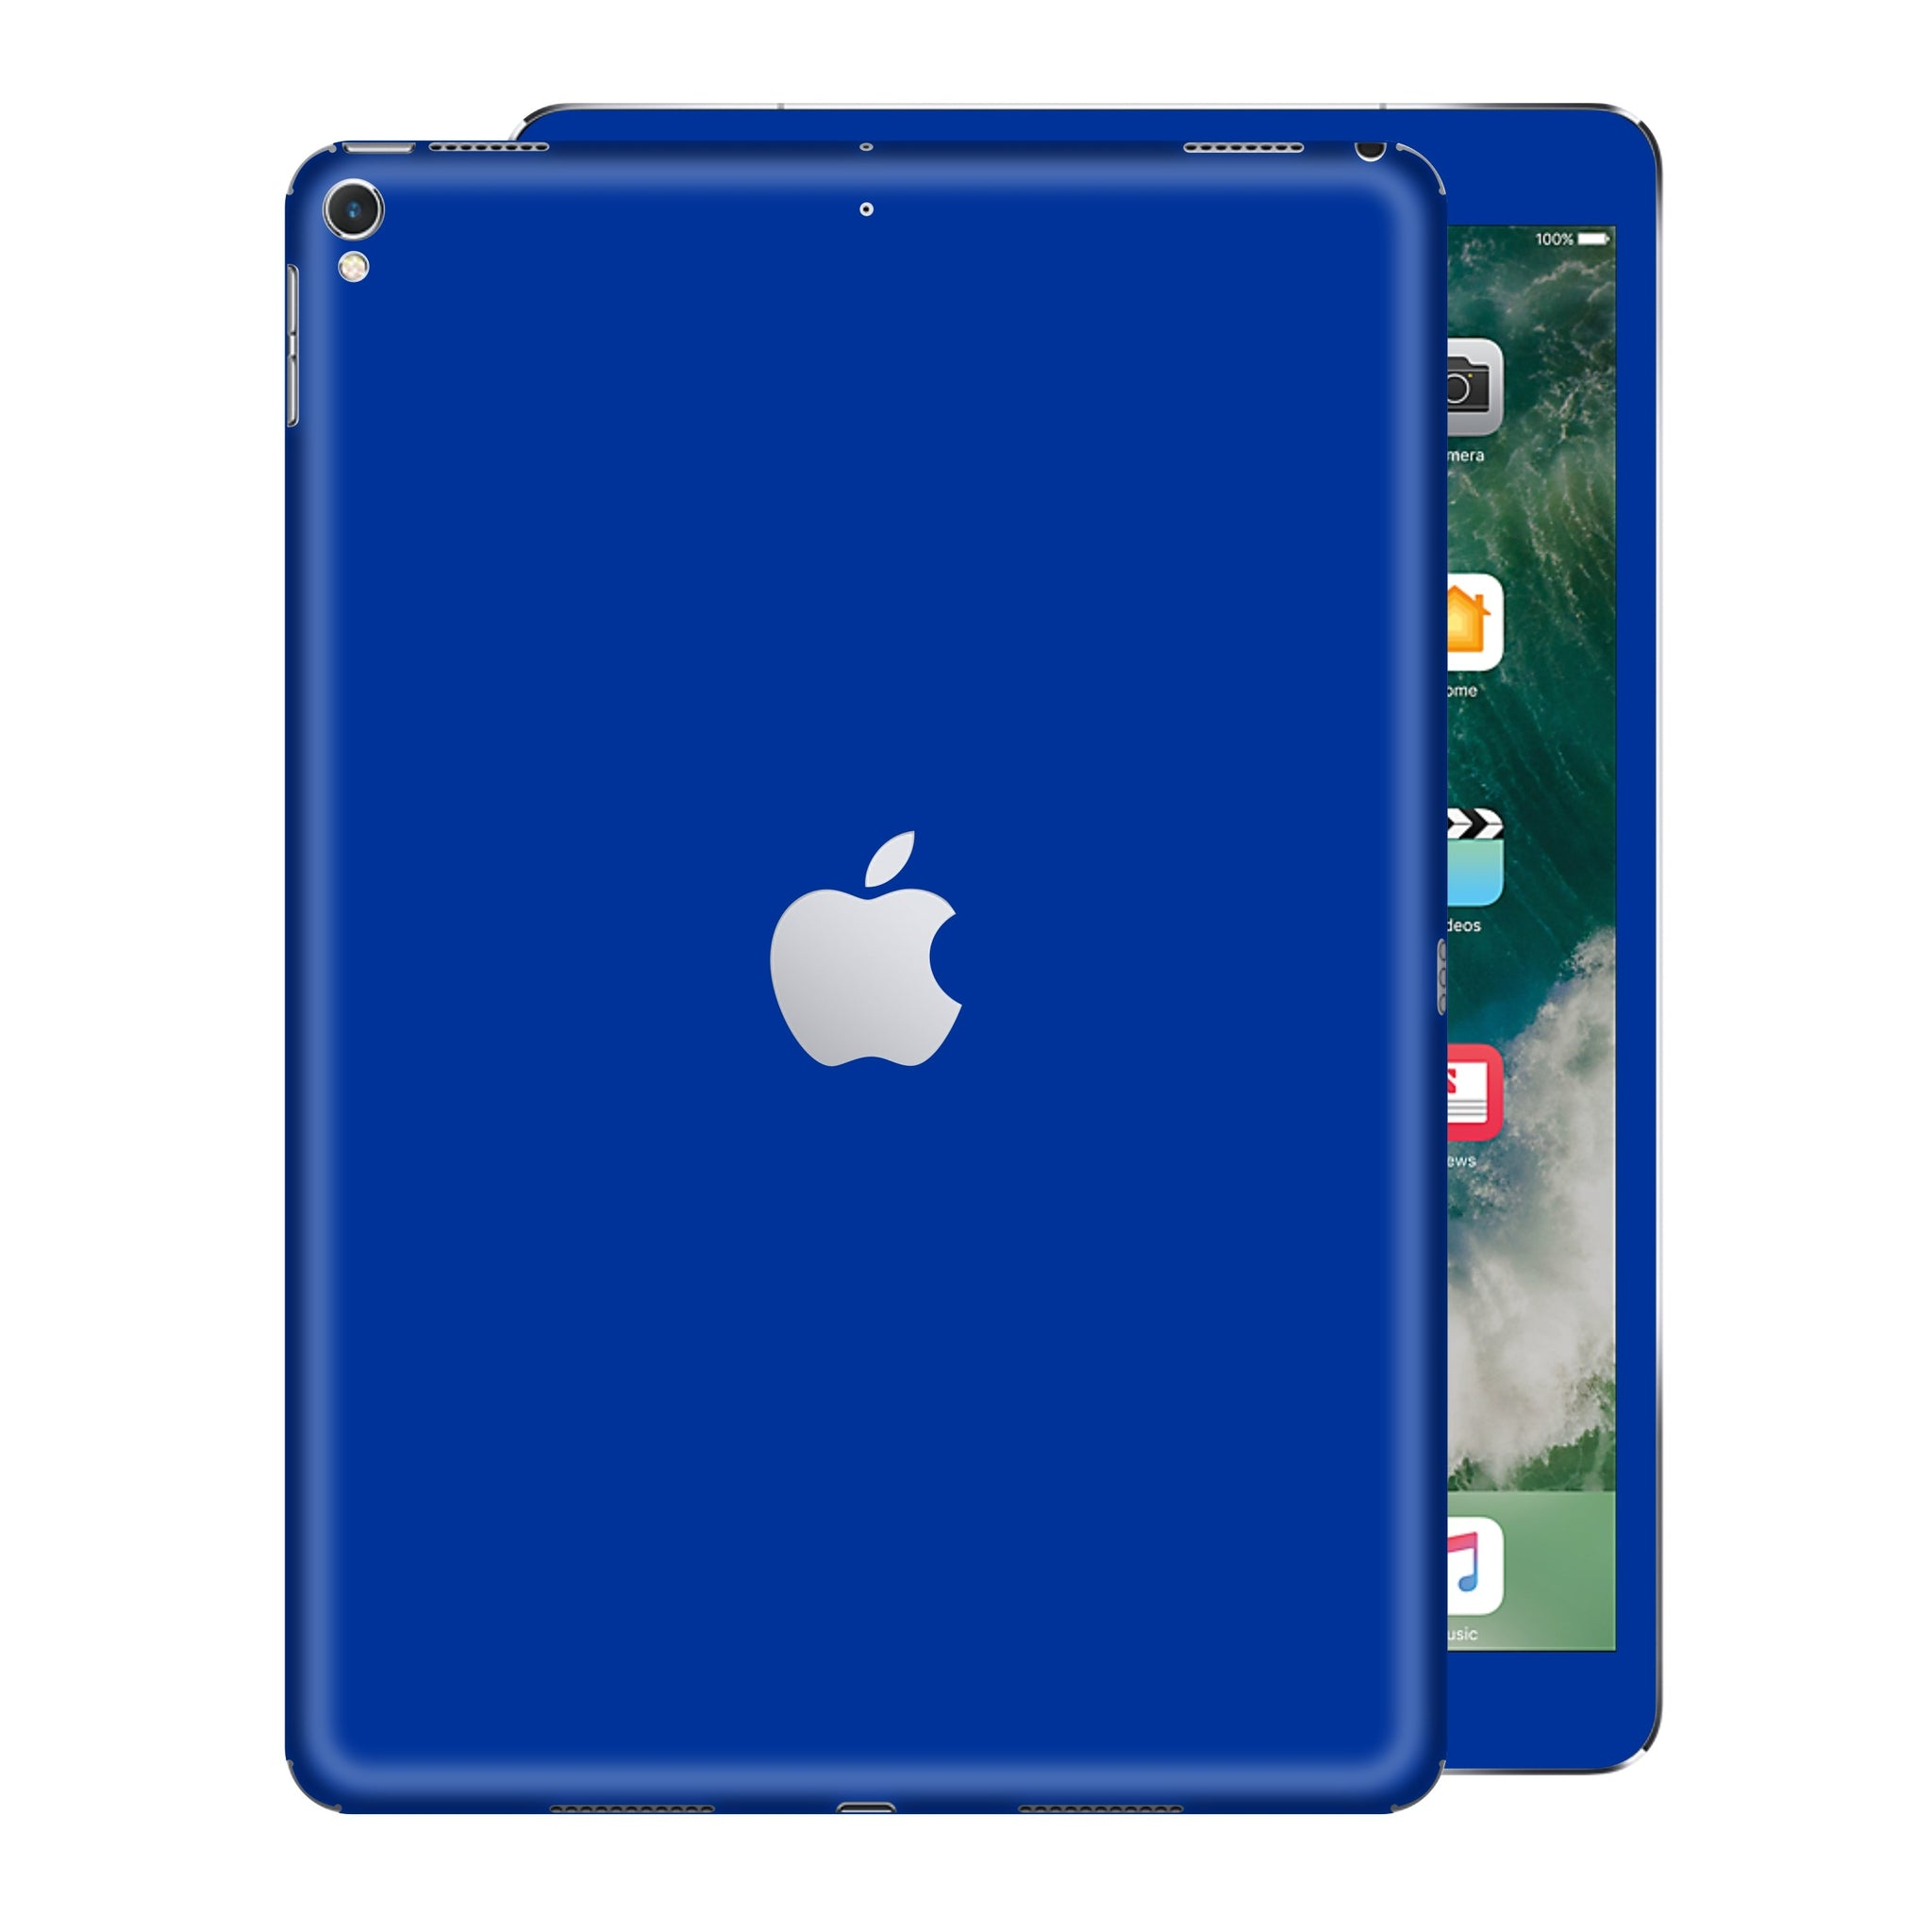 iPad PRO 12.9 inch 2017 Glossy Royal Blue Skin Wrap Sticker Decal Cover Protector by EasySkinz